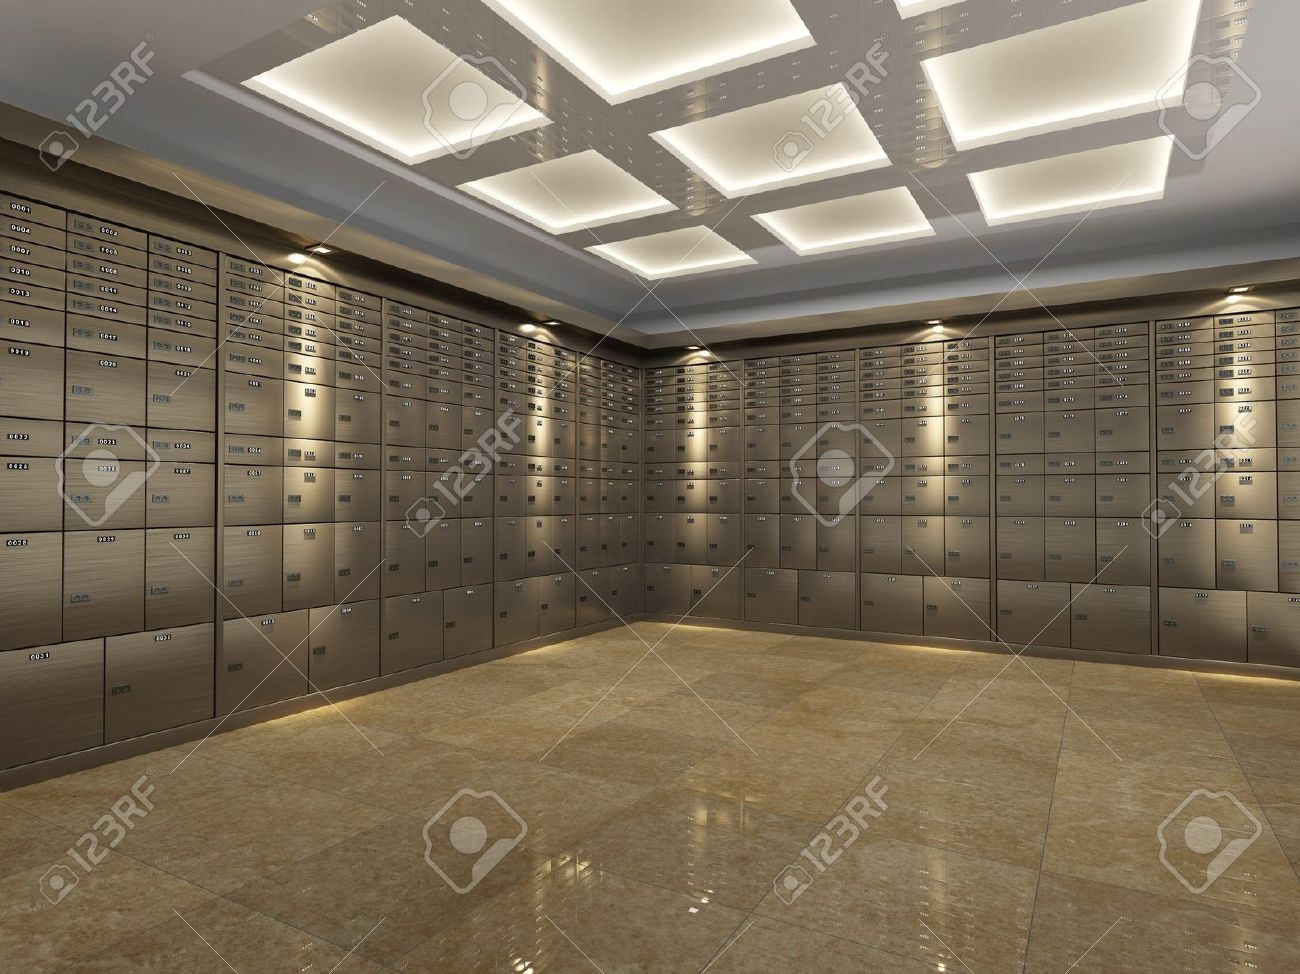 interior of a fireproof reinforced bank vault or safe room with